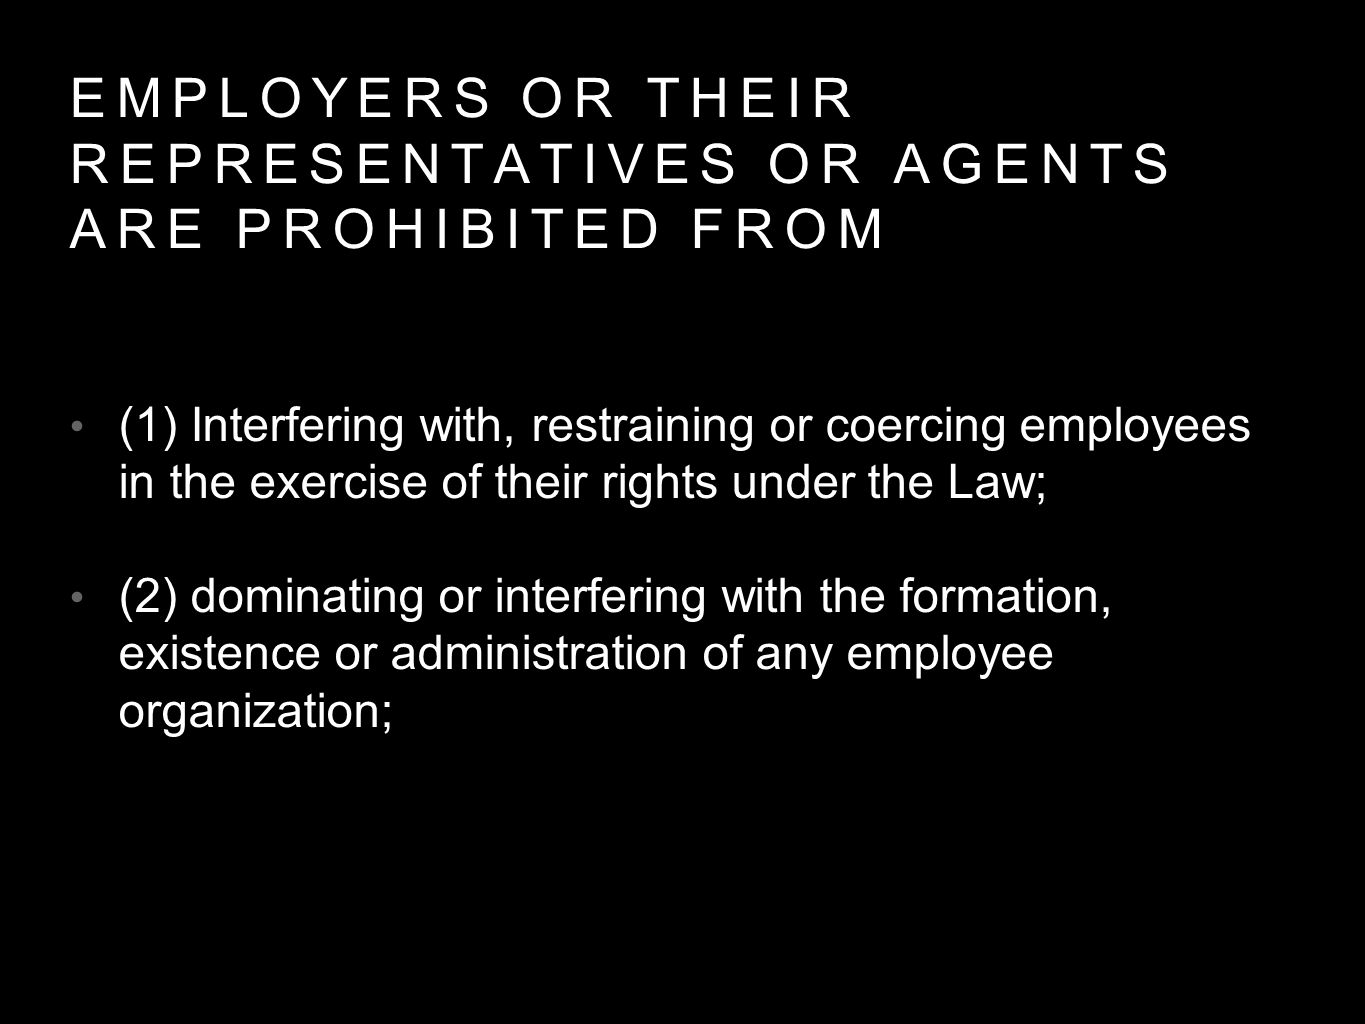 EMPLOYERS OR THEIR REPRESENTATIVES OR AGENTS ARE PROHIBITED FROM (1) Interfering with, restraining or coercing employees in the exercise of their rights under the Law; (2) dominating or interfering with the formation, existence or administration of any employee organization;